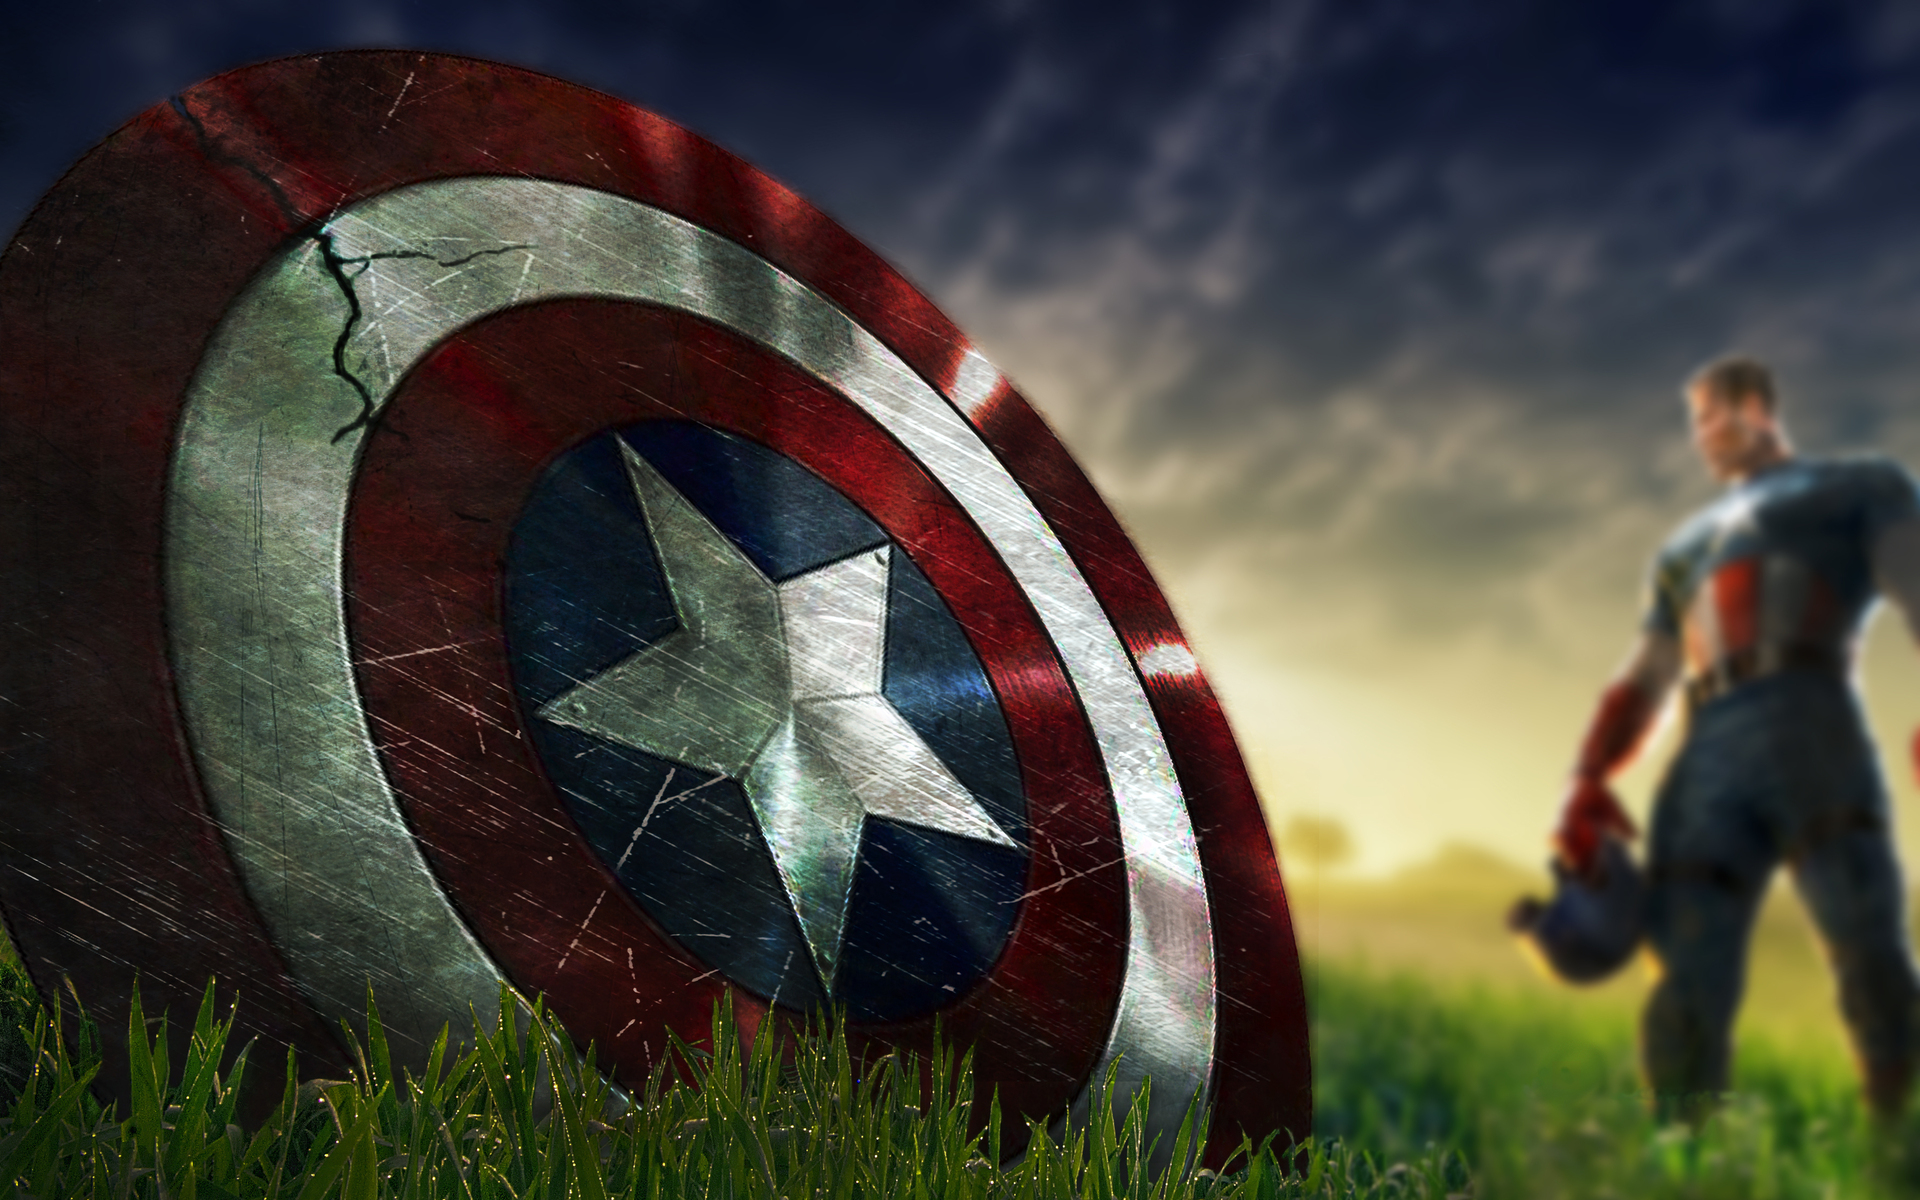 Download Wallpapers On Love Quotes Captain America Shield Wallpaper Hd Pixelstalk Net